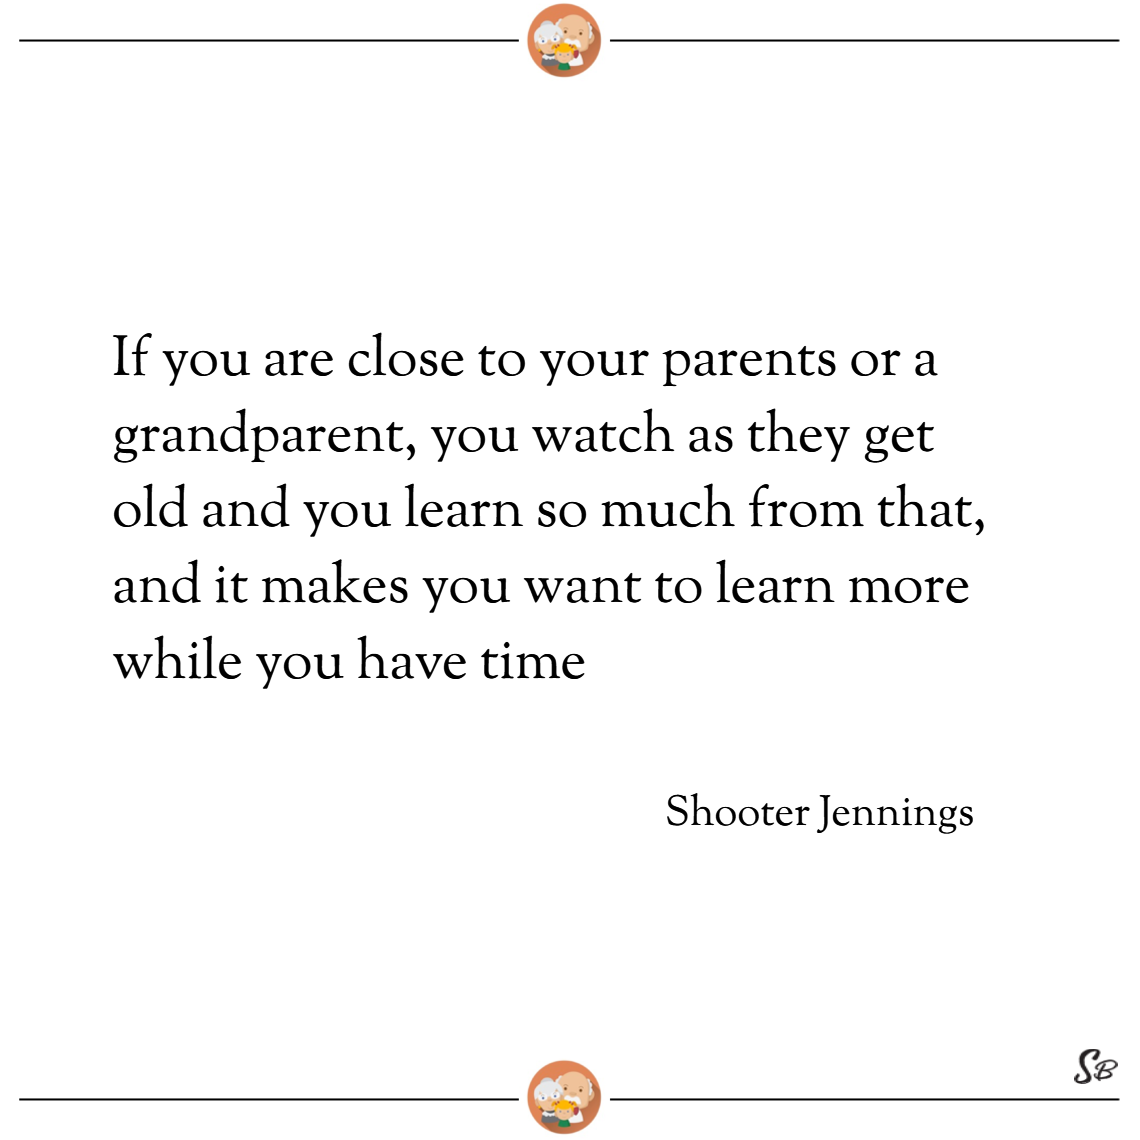 If you are close to your parents or a grandparent, you watch as they get old and you learn so much from that, and it makes you want to learn more while you have time. – shooter jennings Grandparent grandchild quotes